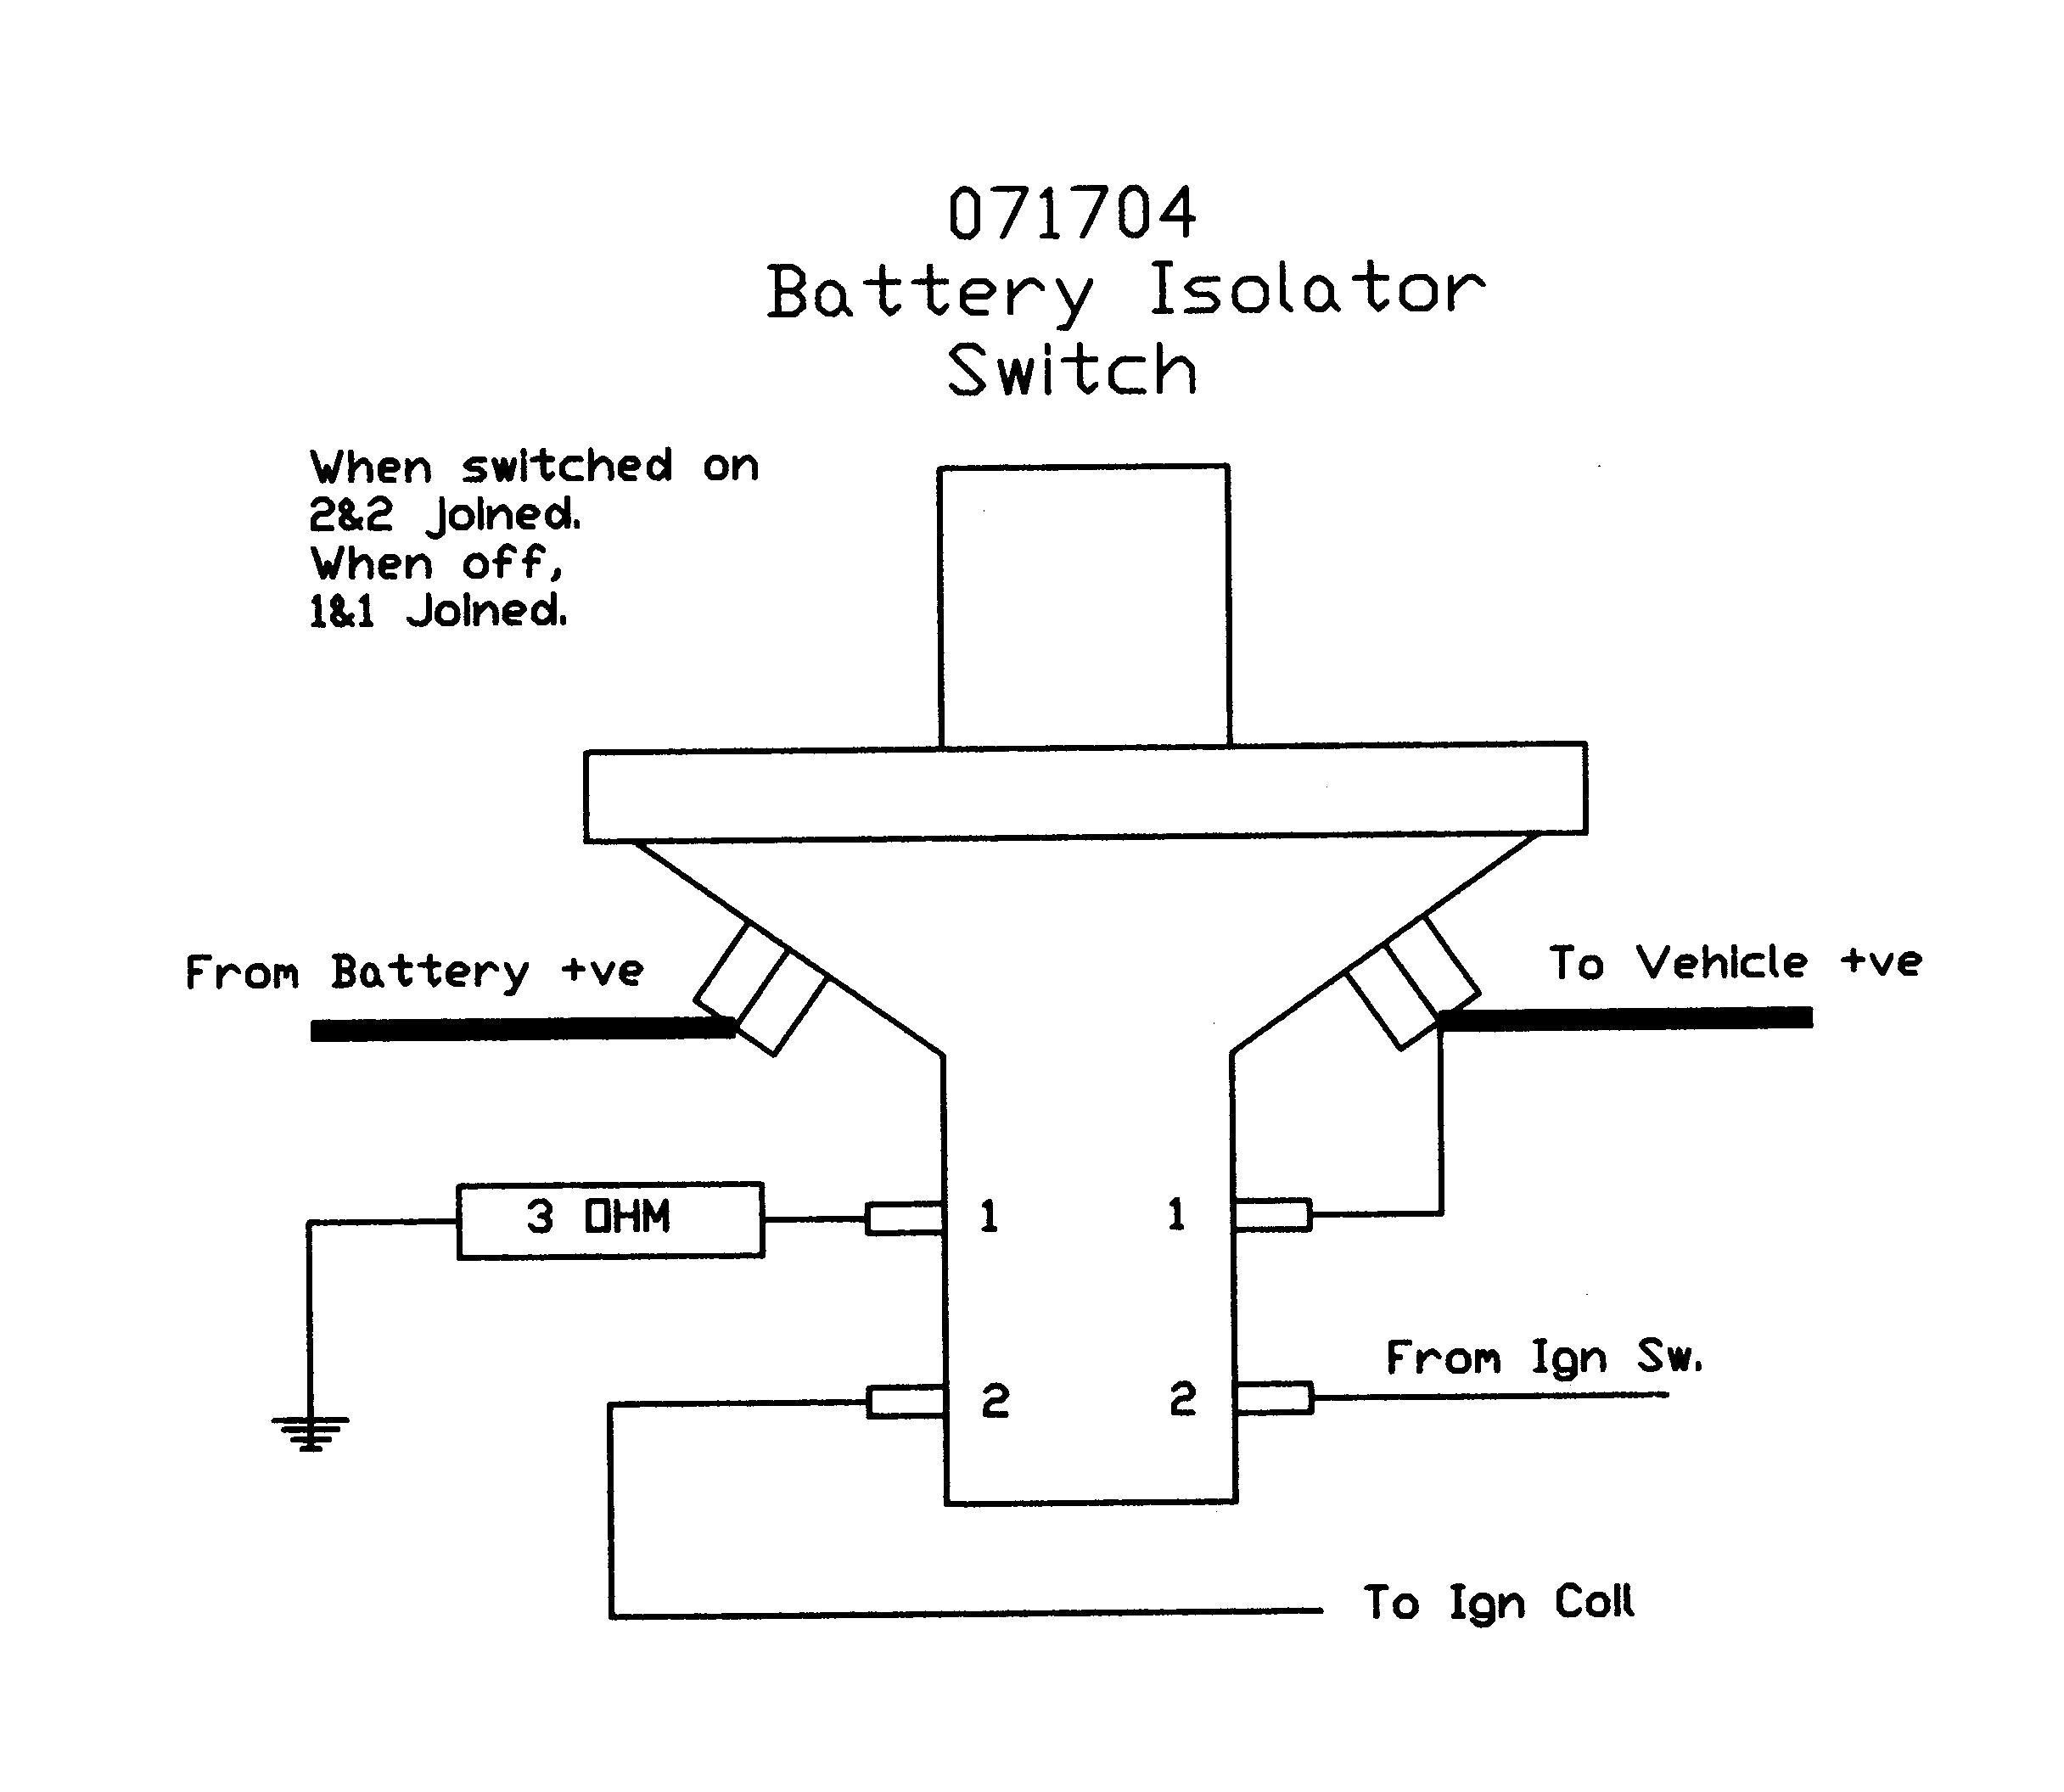 Super Power Battery Isolator Wiring Diagram - Wiring Data